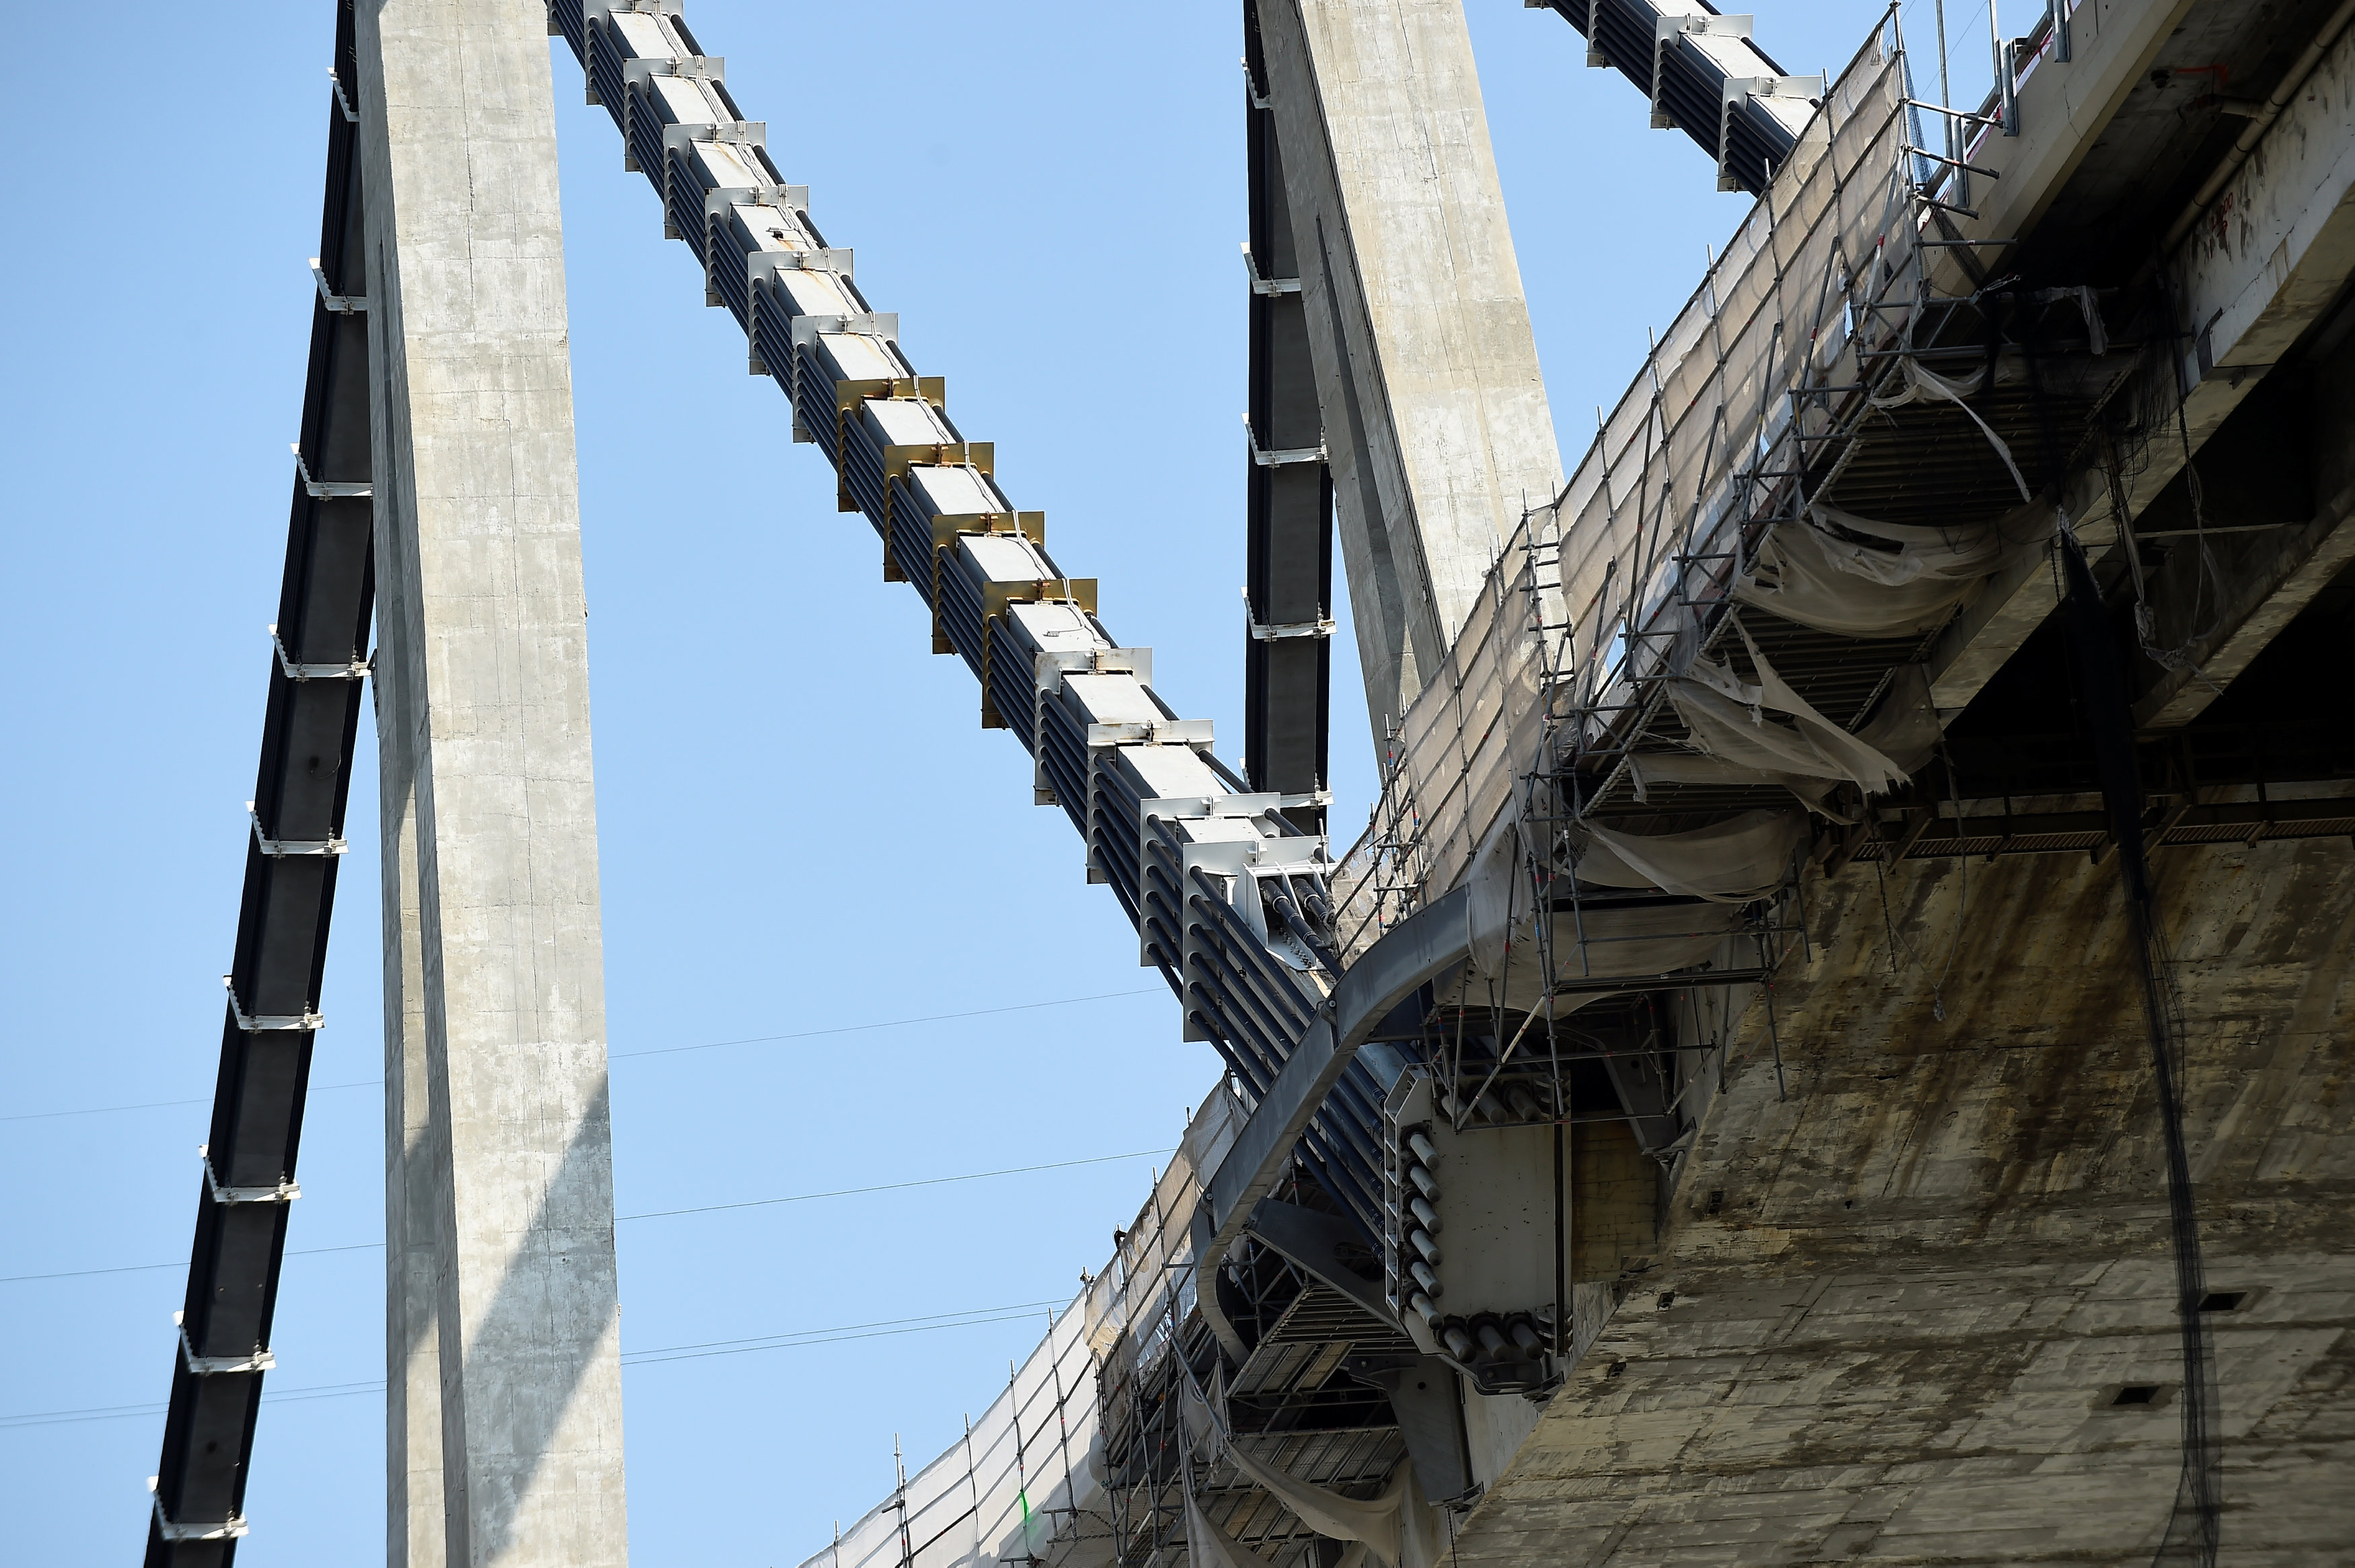 View of the renovation work on the collapsed Morandi Bridge in Genoa